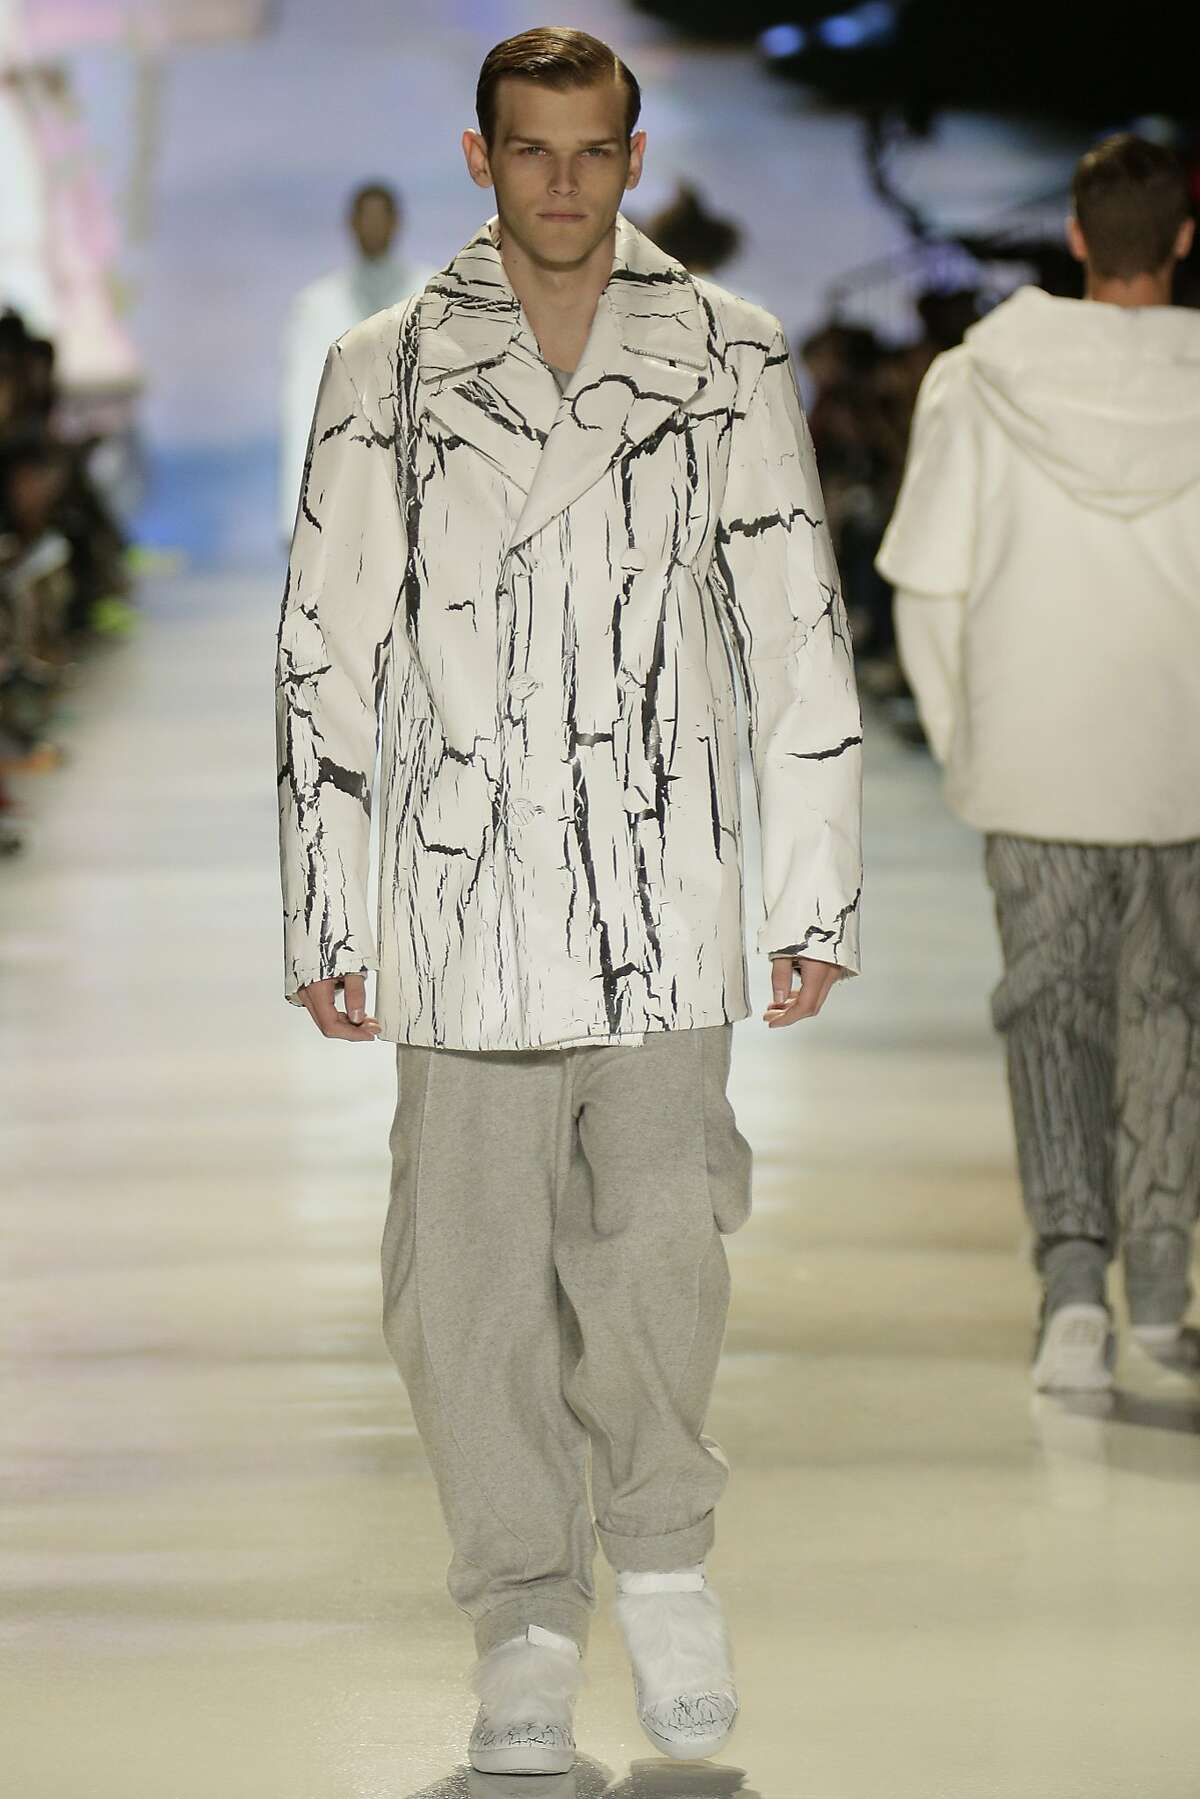 Student menswear designer Seth Olson created a novel fabric by coating denim with glue and then textile paint to create cracks that resemble fissures in blocks of ice, in a collection shown May 8, 2014 at the Academy of Art University graduation fashion show in San Francisco.